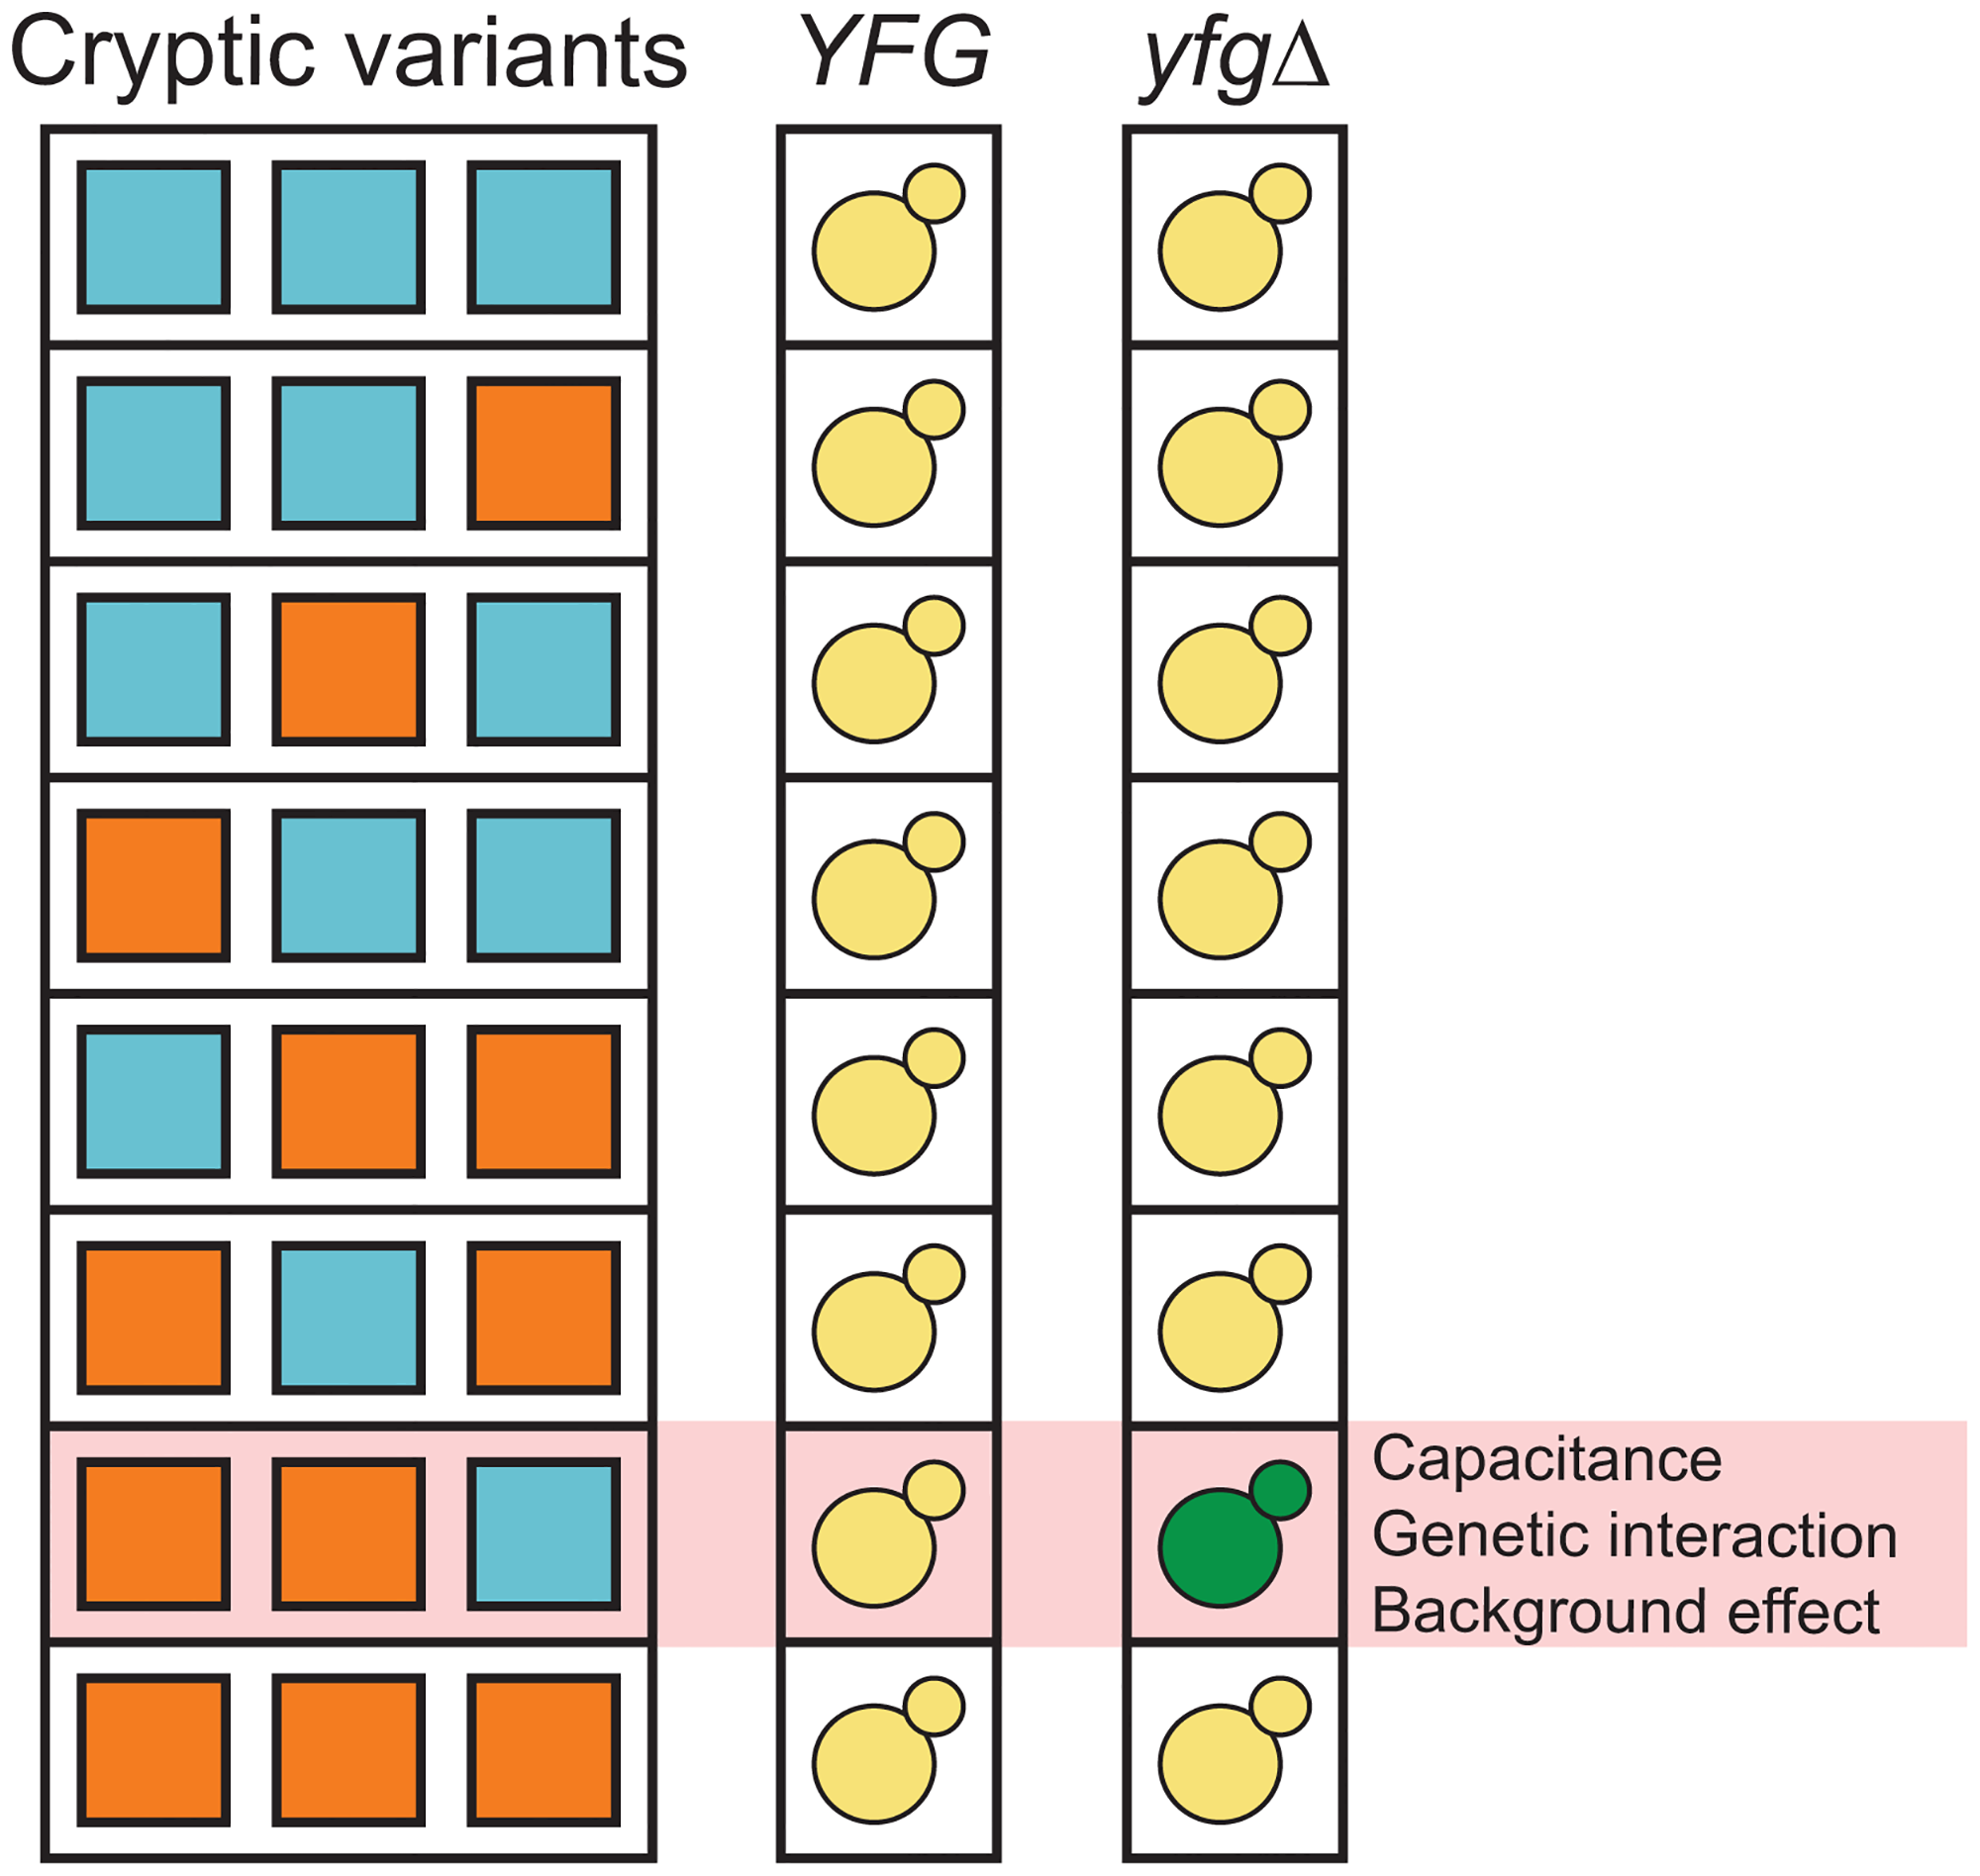 Capacitance, higher-order genetic interactions, and genetic background effects might be related phenomena that involve interactions among capacitating mutations and cryptic variants.